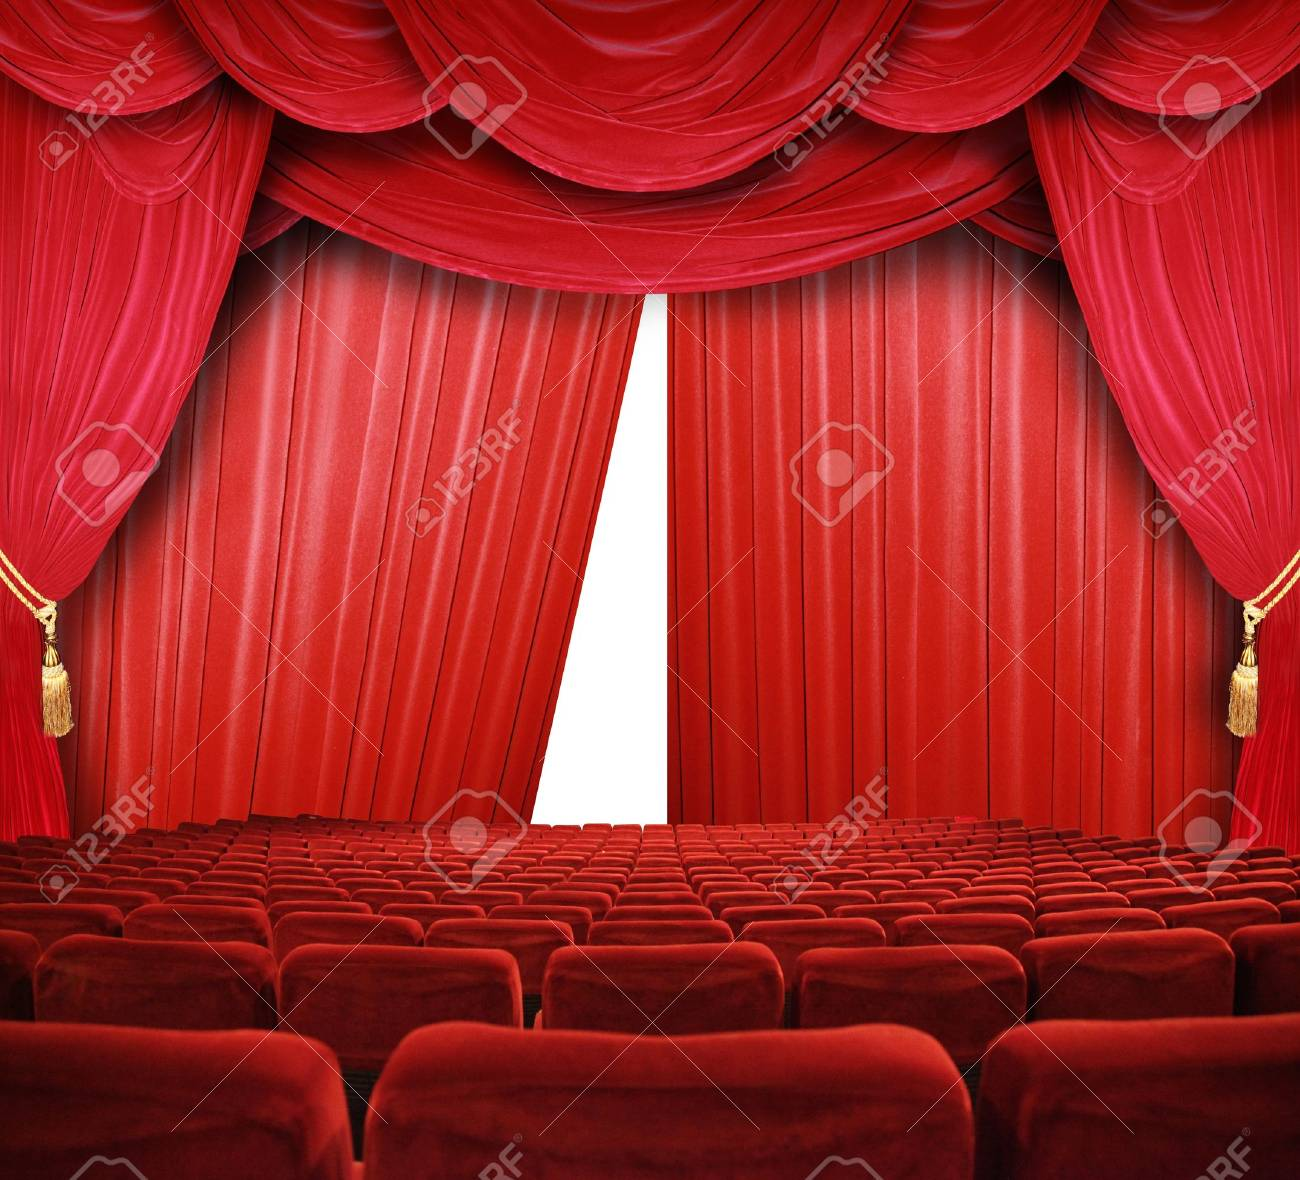 classic cinema with red seats Stock Photo - 9364709